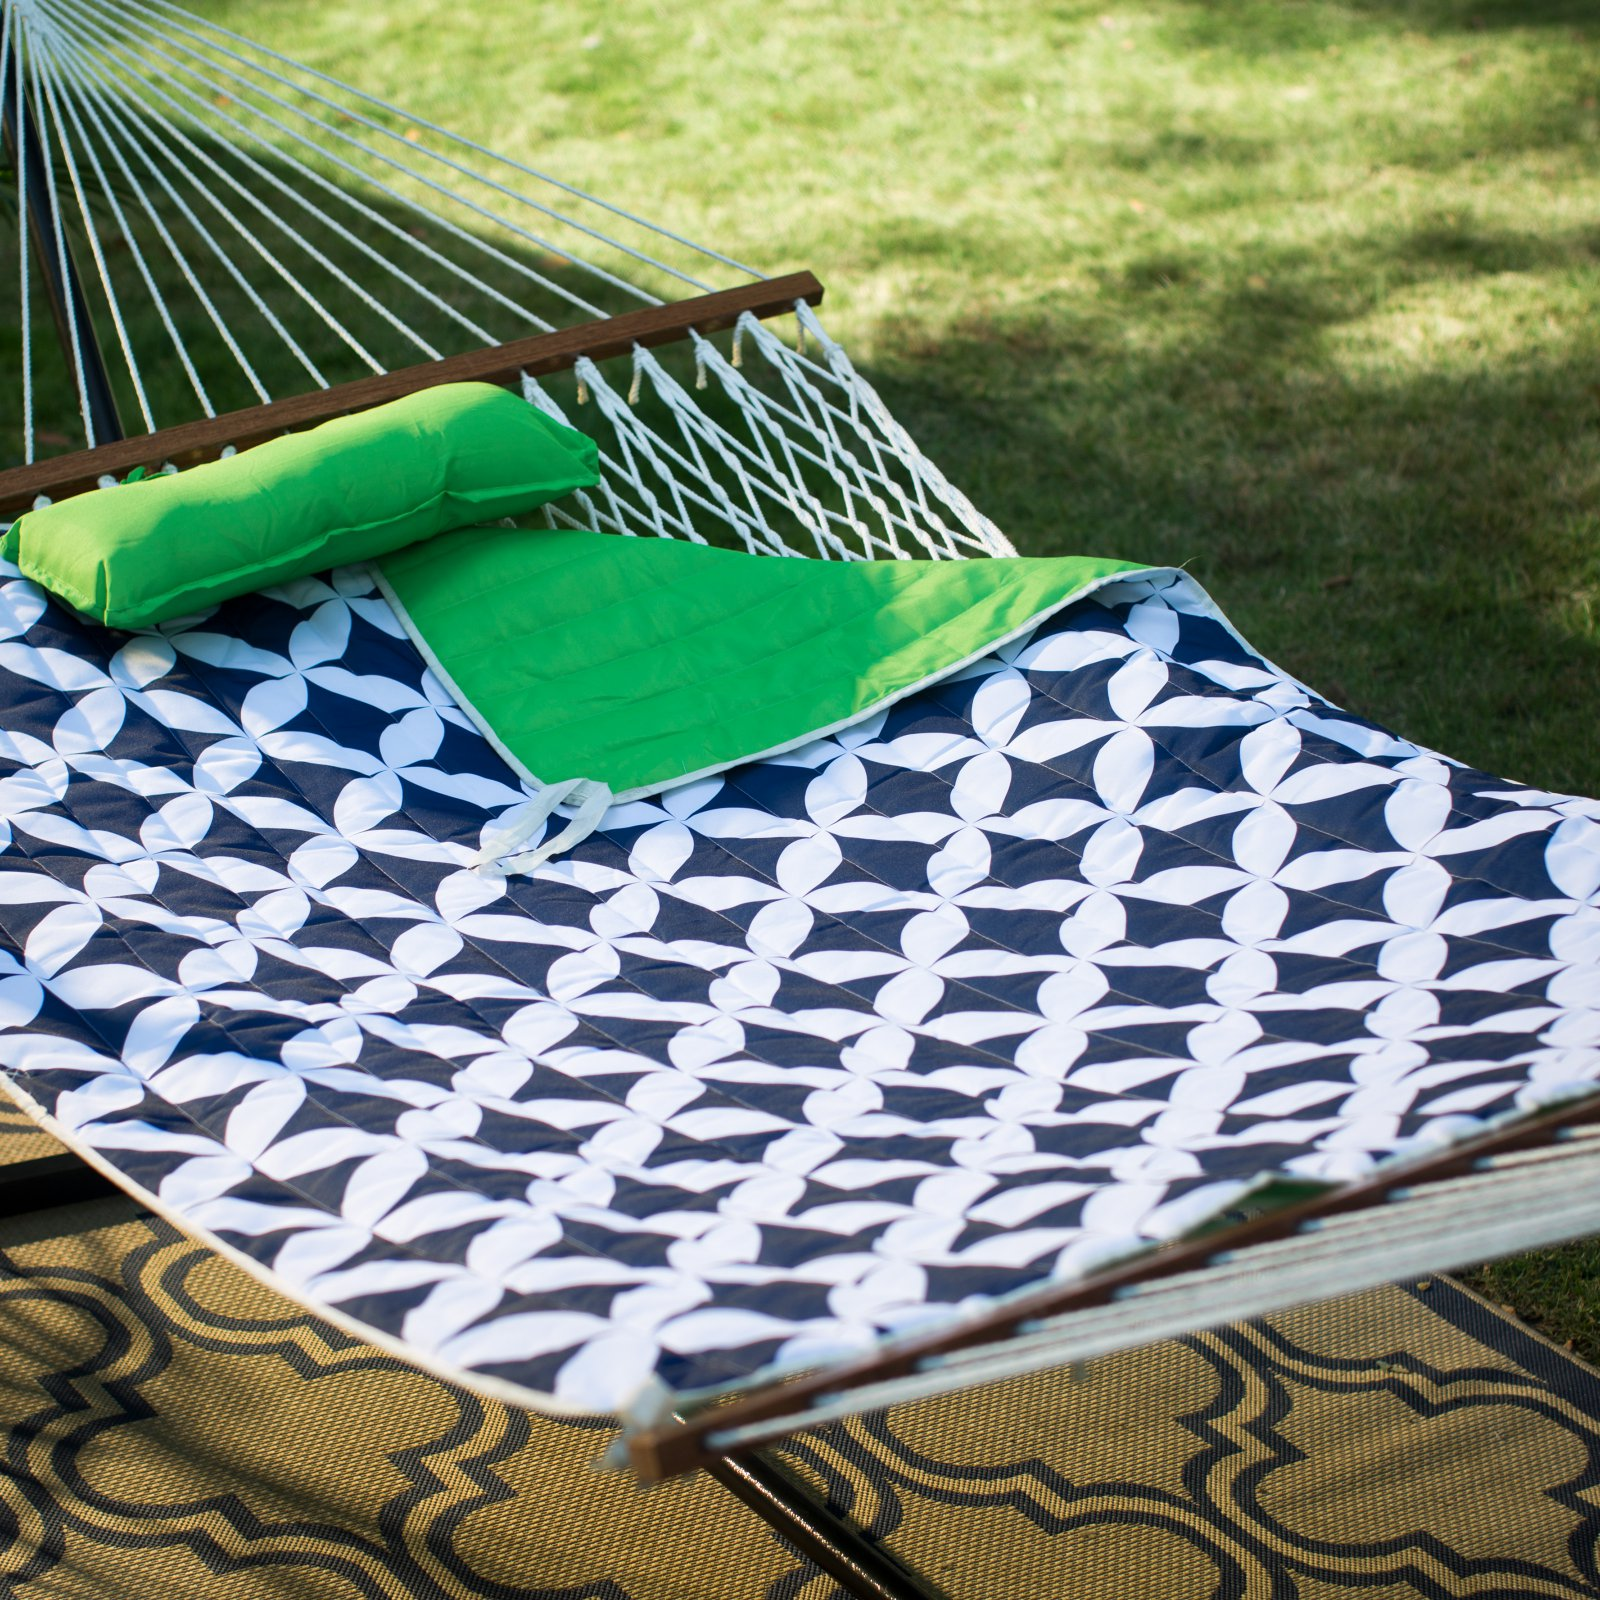 Coral Coast 11 ft. Cotton Rope Double Hammock with Metal Stand Deluxe Set Green Navy by